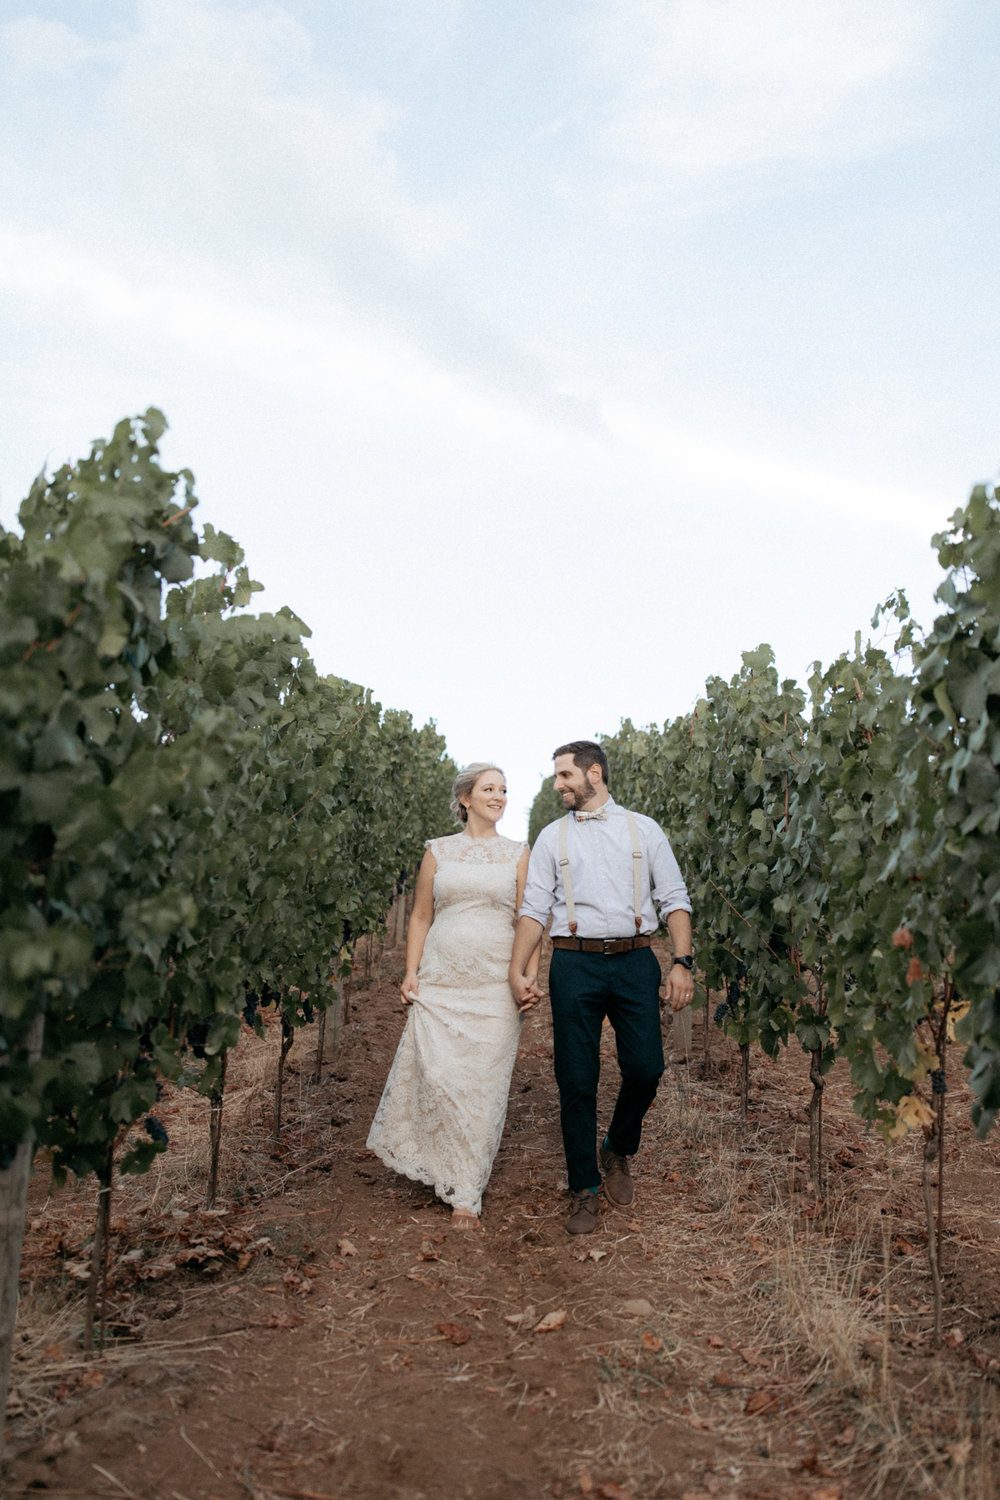 Summer wedding at Tumwater vineyard in Oregon's wine country